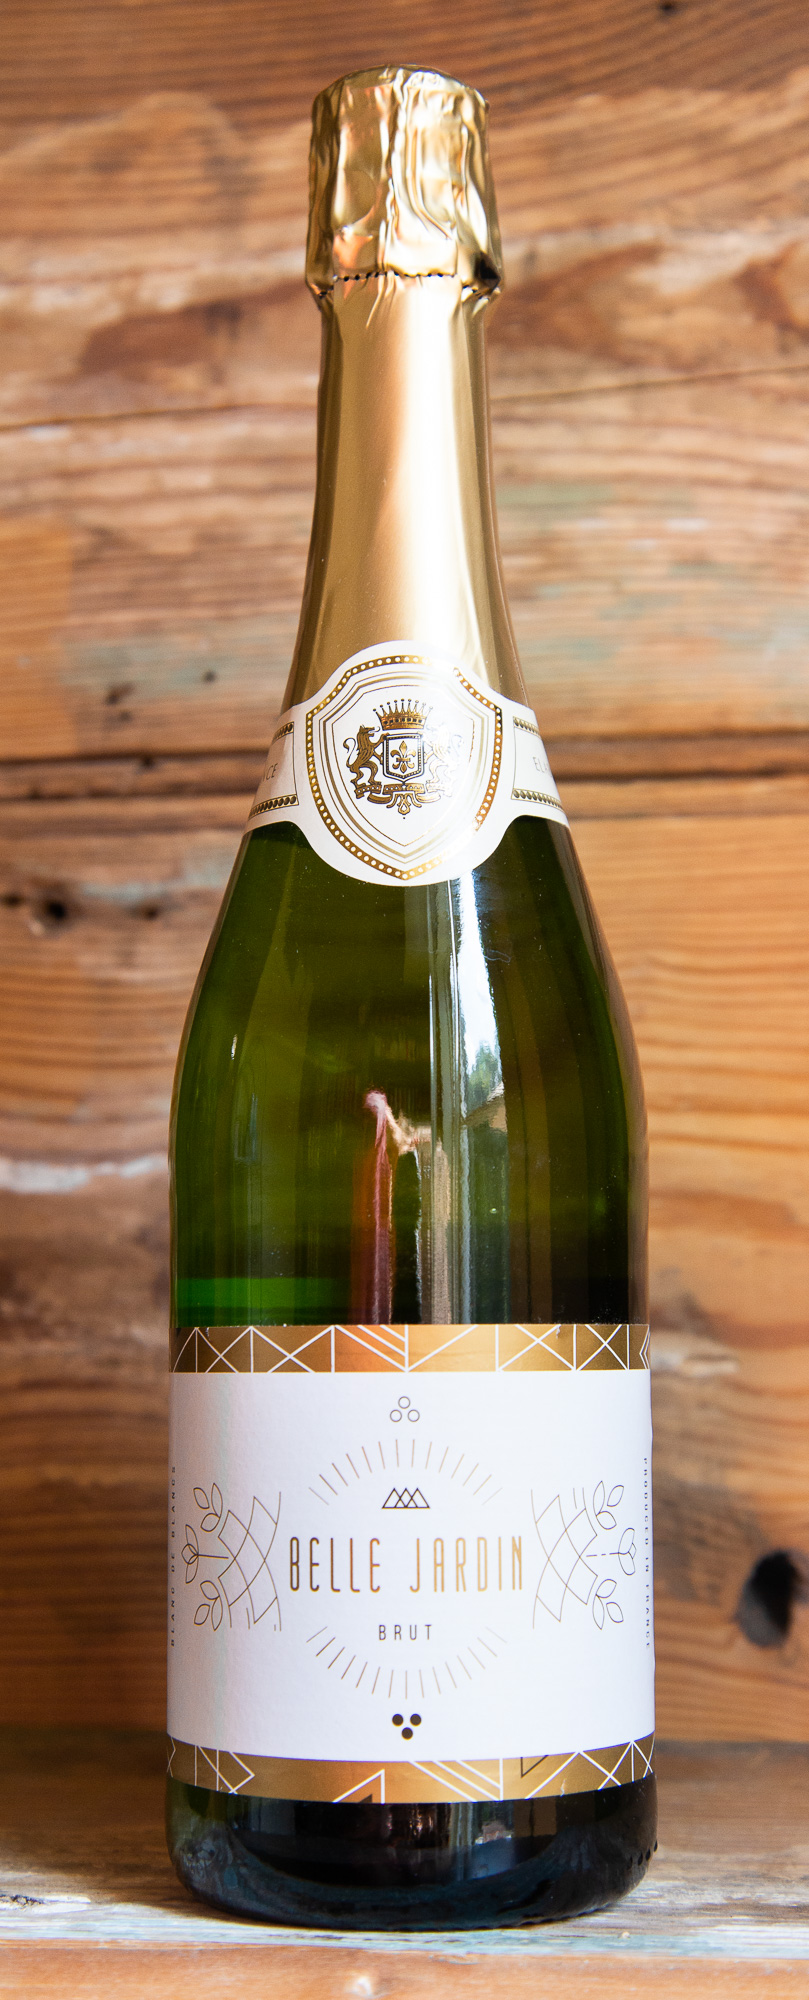 Belle Jardin Blanc de Blanc Brut NV - Origin: FranceRetail: $12.95 | Sale: $11.65This beautiful Alsatian sparkling Pinot Blanc exhibits light floral aromas with a hint of toasted, buttered brioche. On the palate, the wine displays a fine texture of beaded bubbles and a lingering clean finish. Excellent as an aperitif or mixing for Kir Royale or Mimosas. This perfectly balanced bubbly combines an elegant flavor with an exhilarating freshness. Lively yet refined, it's an ideal choice for all celebrations!Pinot Blanc